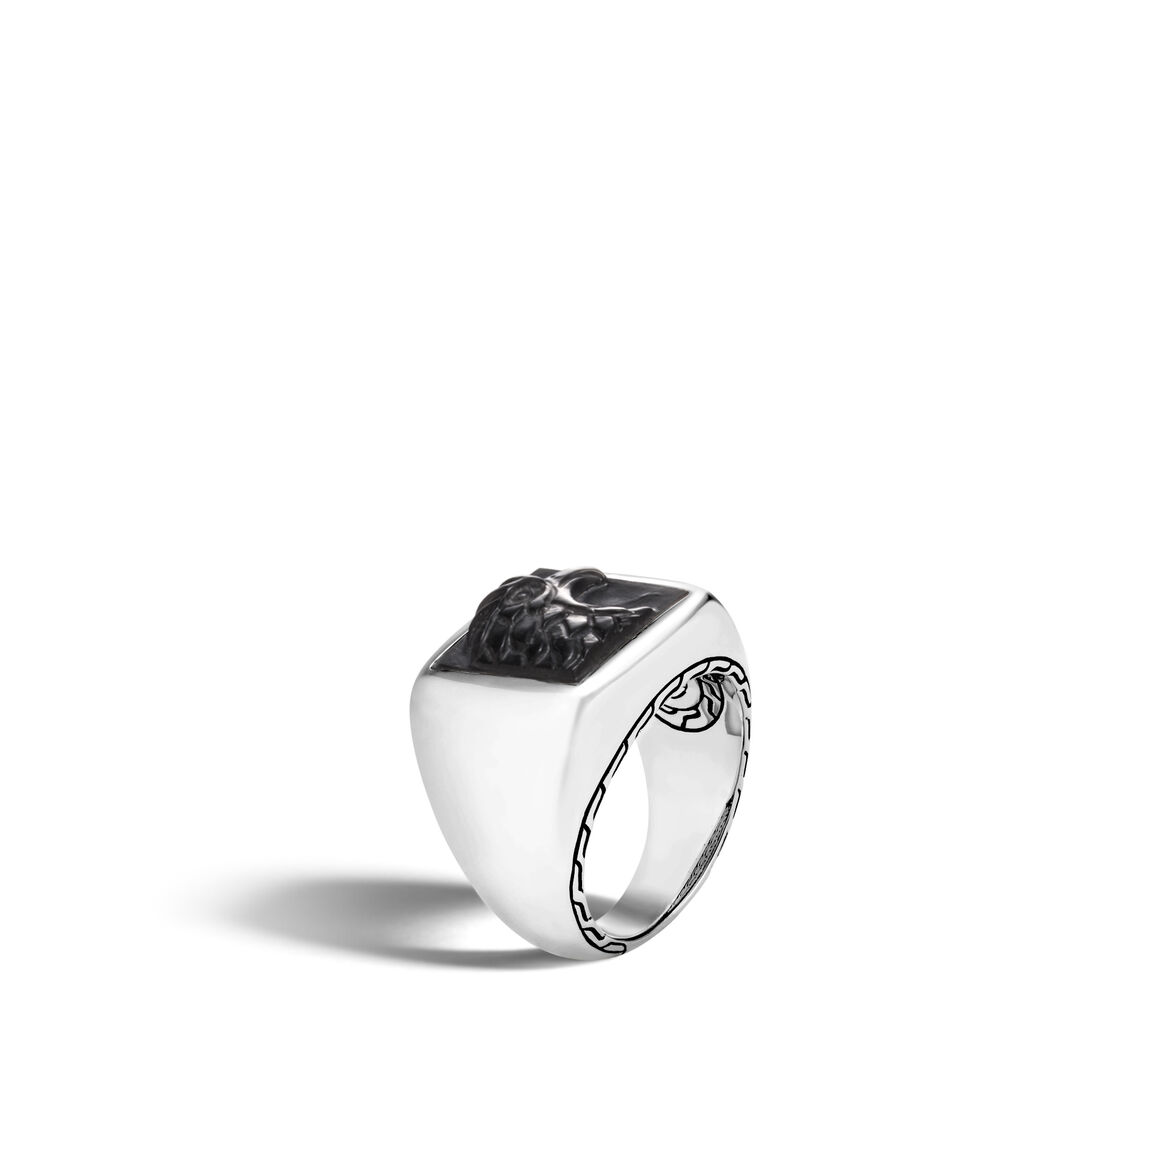 Legends Eagle Signet Ring in Silver with Gemstone